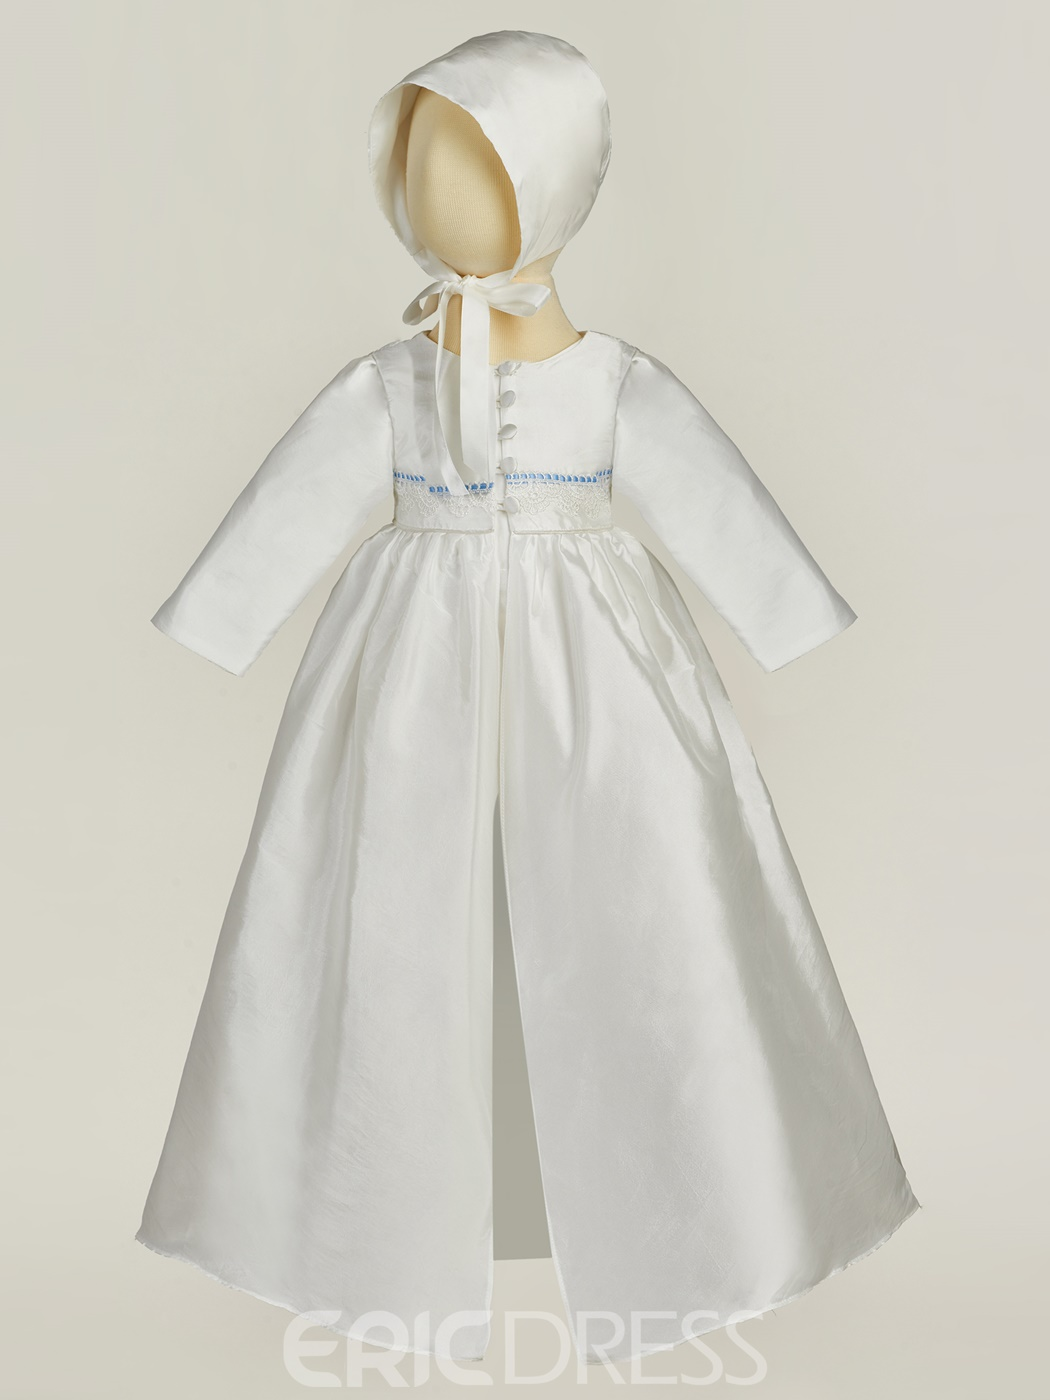 Ericdress Infant 2 Pieces Baby Boy's Christening Gown